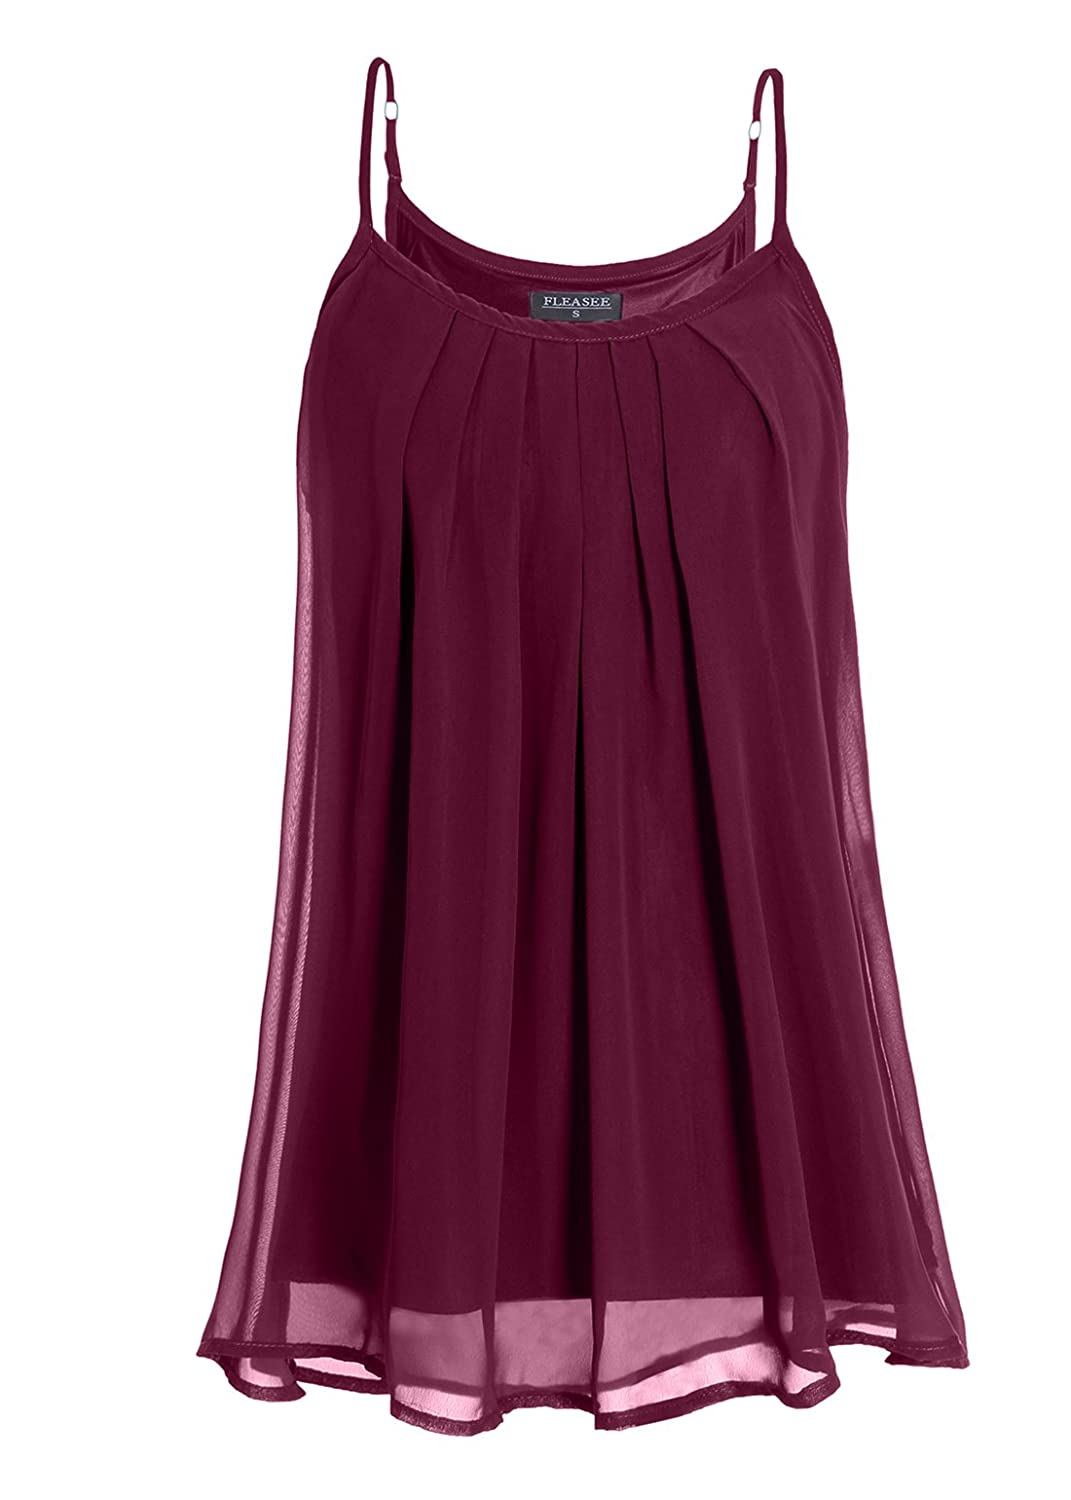 Fleasee Women's Summer Cool Casual Sleeveless Vest Tops Pleated Layered Chiffon Camisoles Tank Top Flea7126